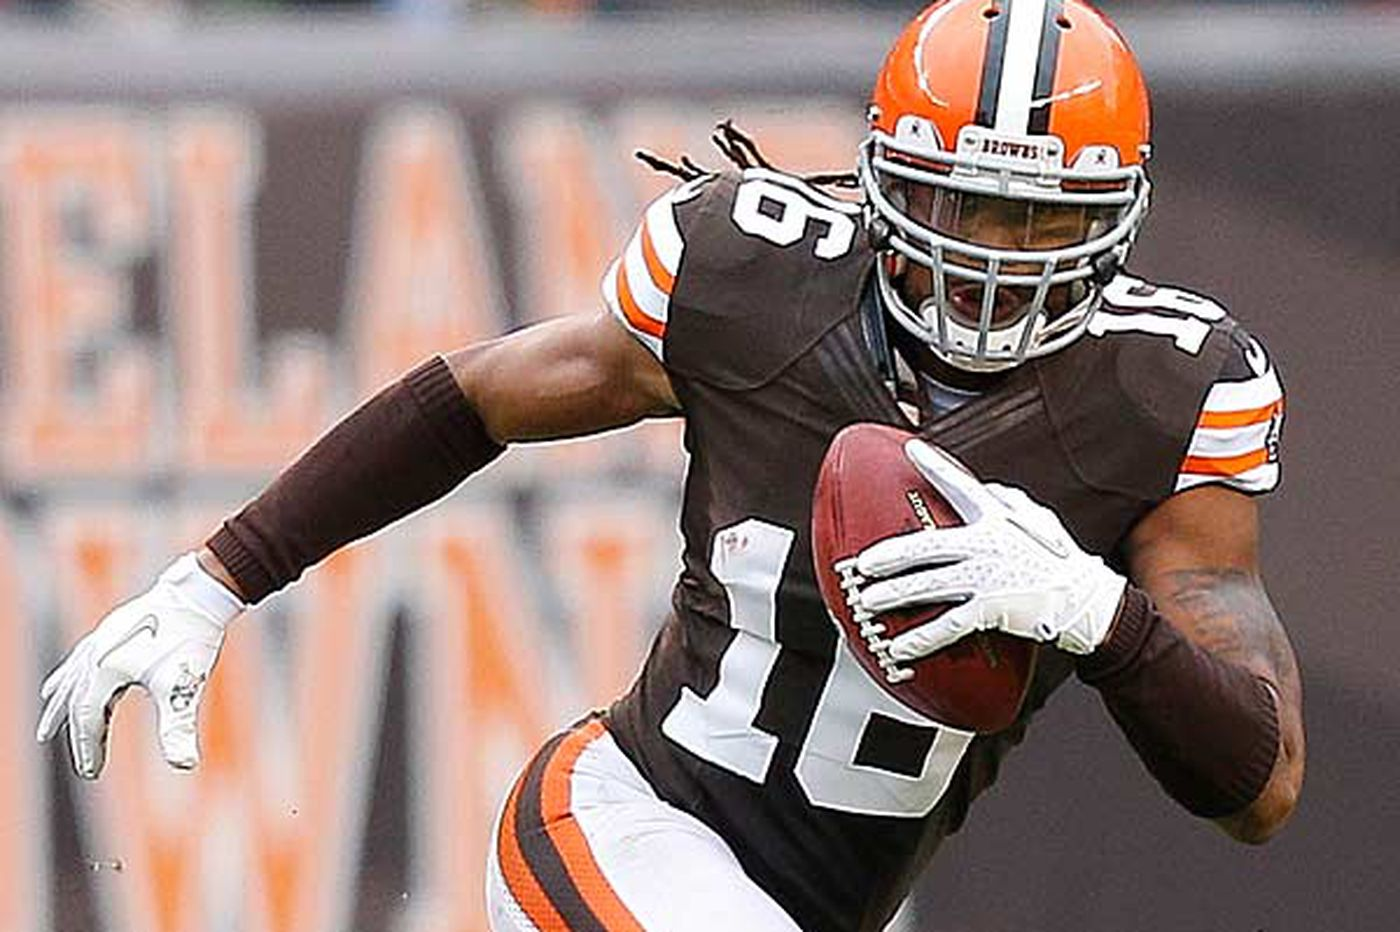 No kickoffs a bad idea, says Browns returner